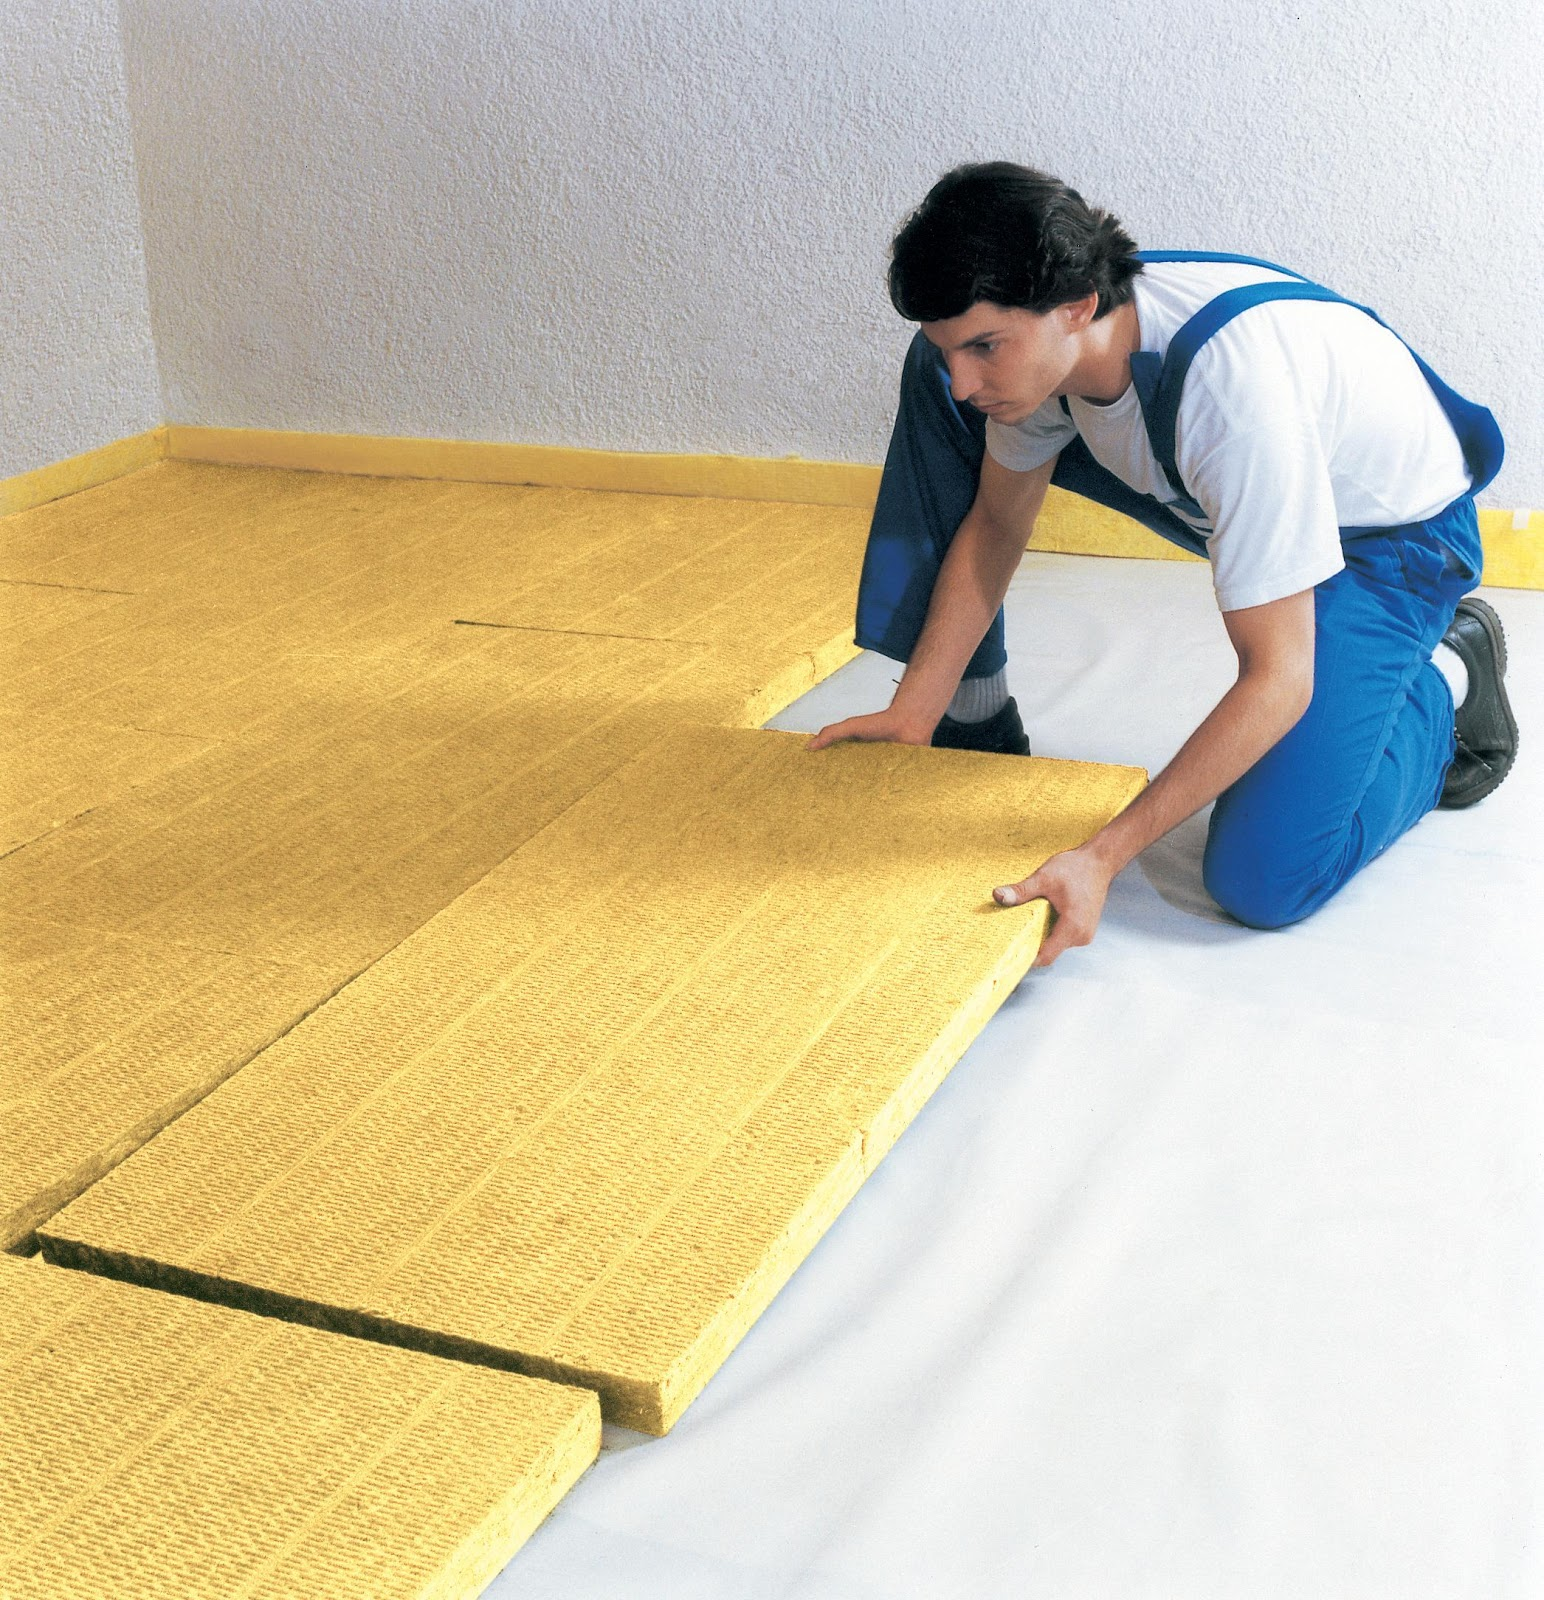 http://kettyle.com/wp-content/uploads/2013/01/Floor-insulation.jpg